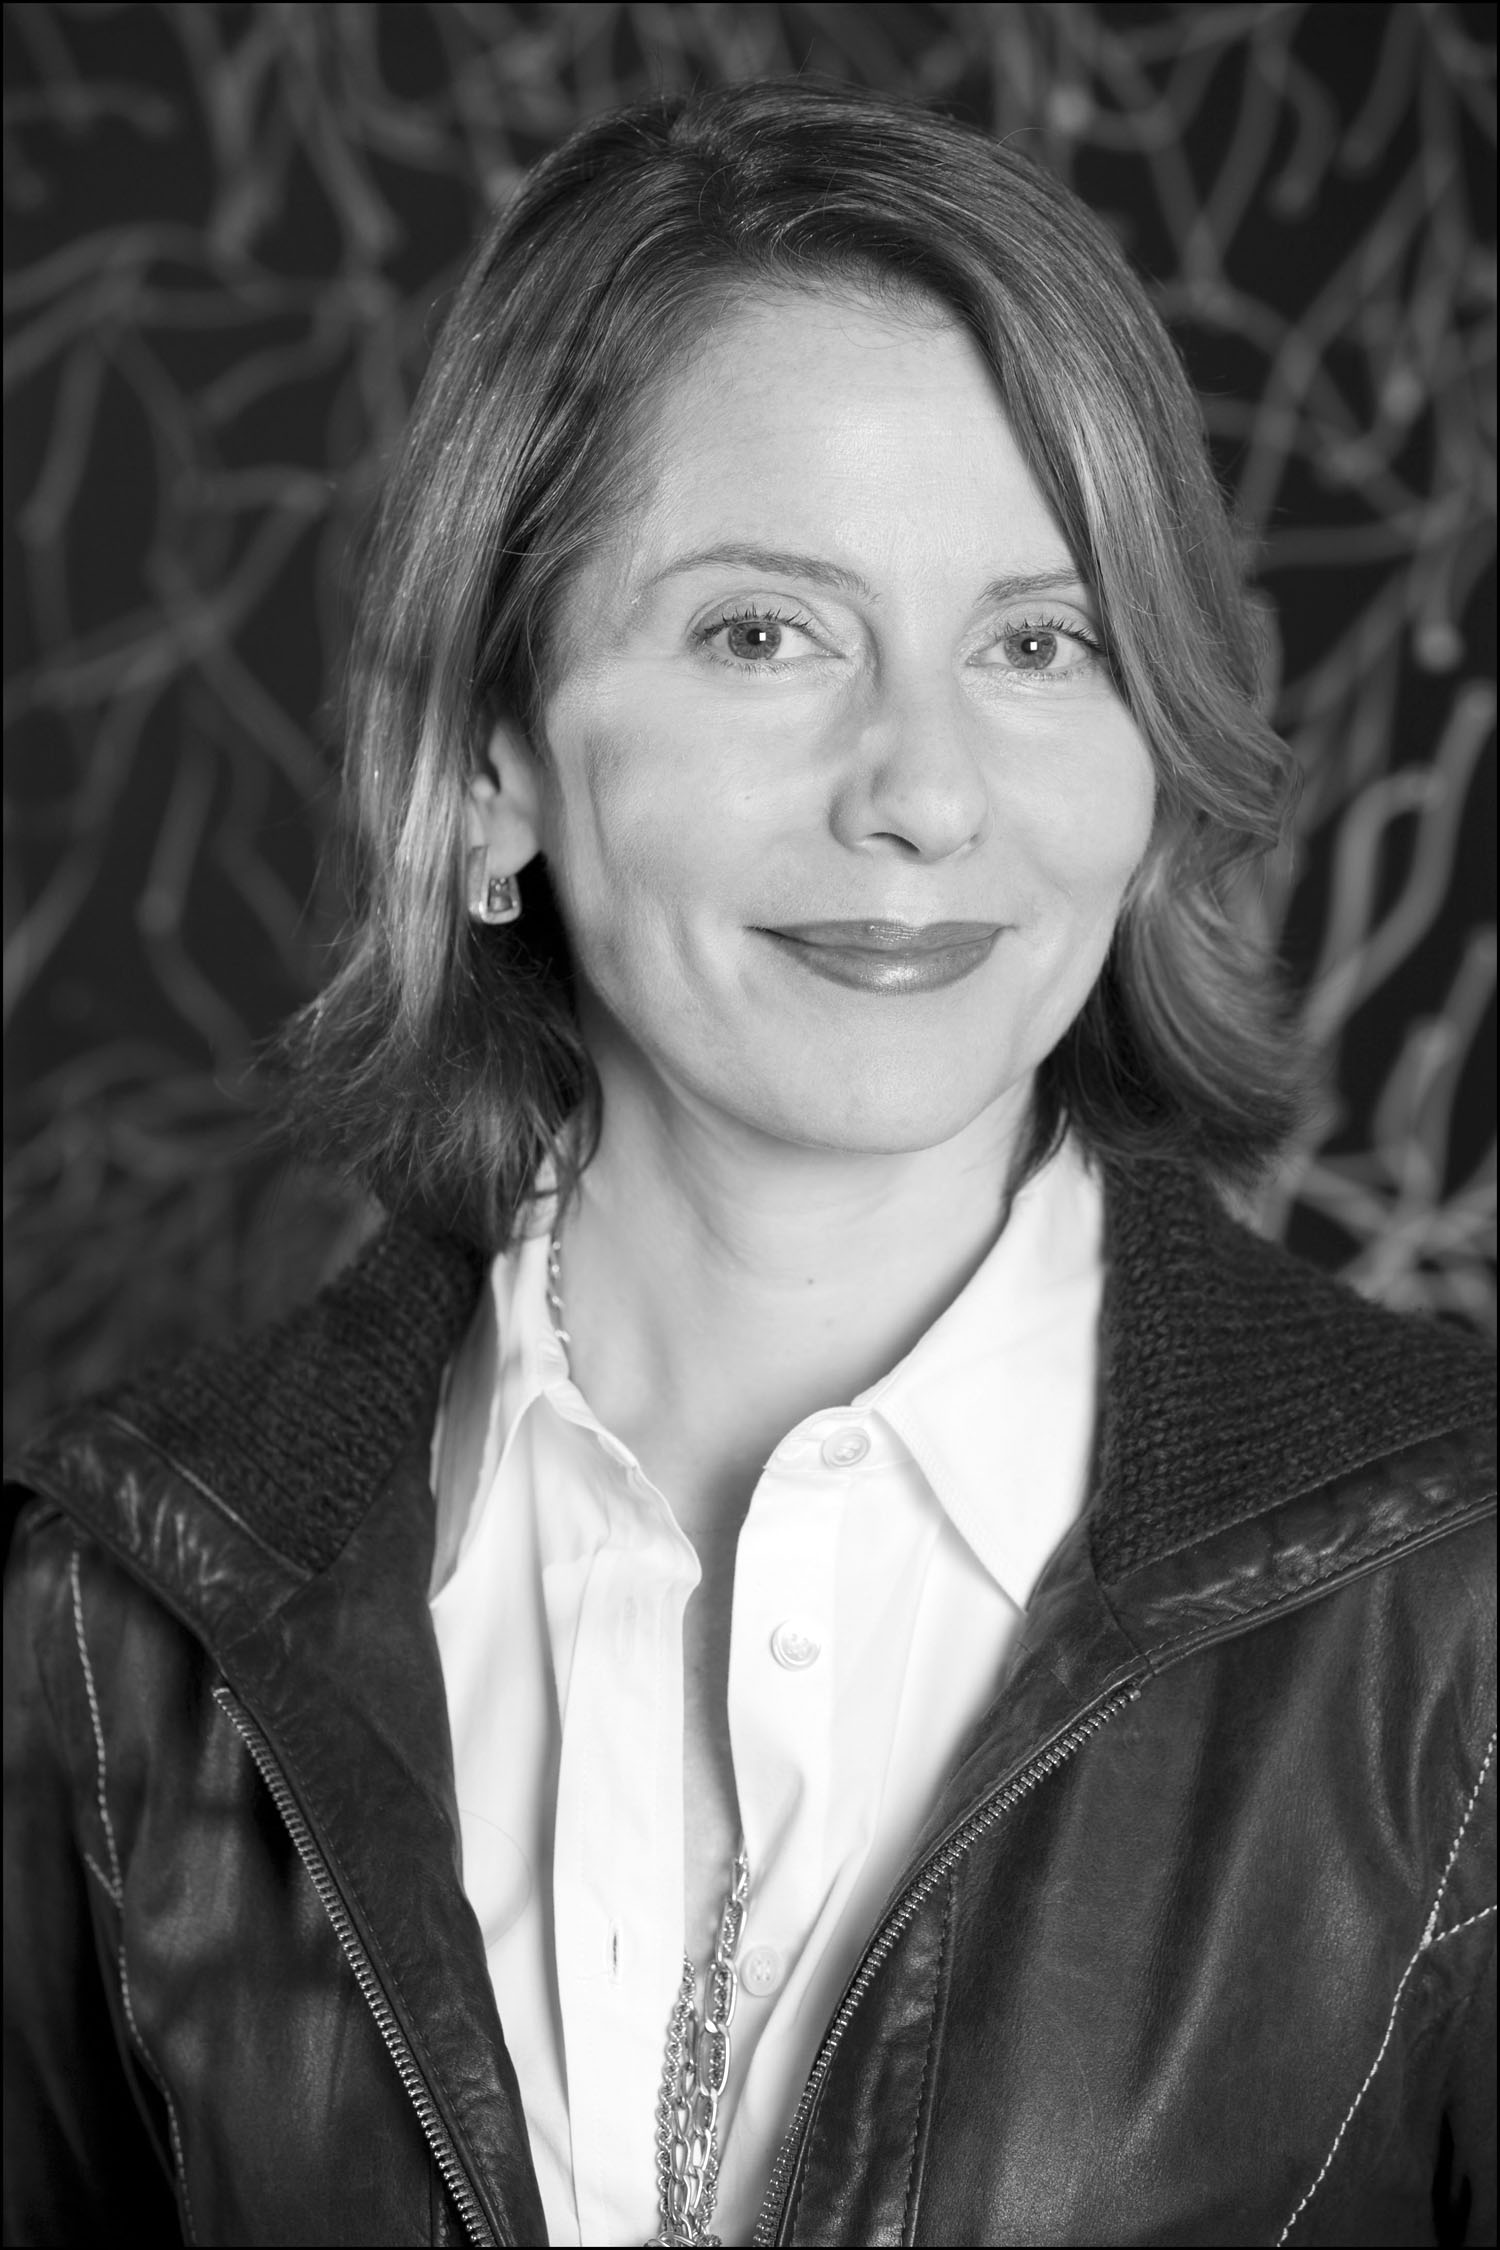 MoMA's A&D curator Paola Antonelli to speak at Pratt exhibition